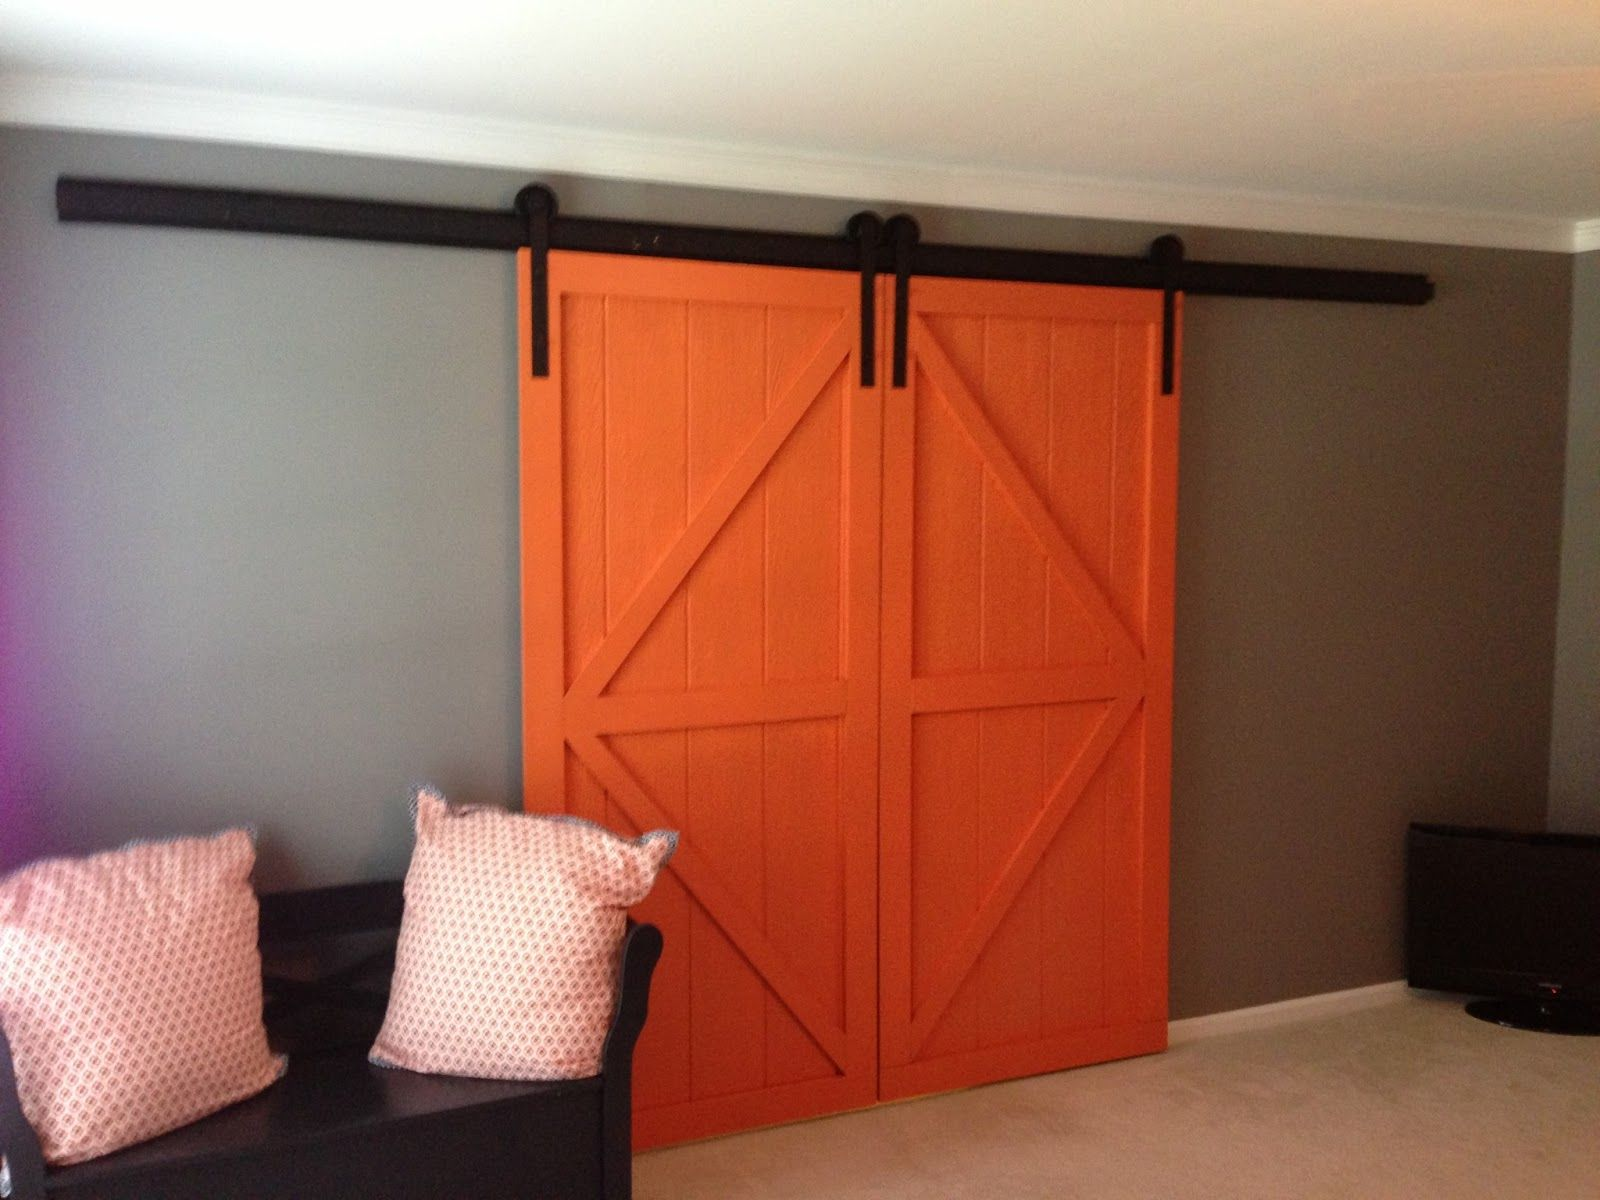 Trendy Enclosed Double Sliding Barn Door With Gray Wall Painted Feat Wooden Benches In Black As Decorate Midcentury Living Areas Furnishing Designs